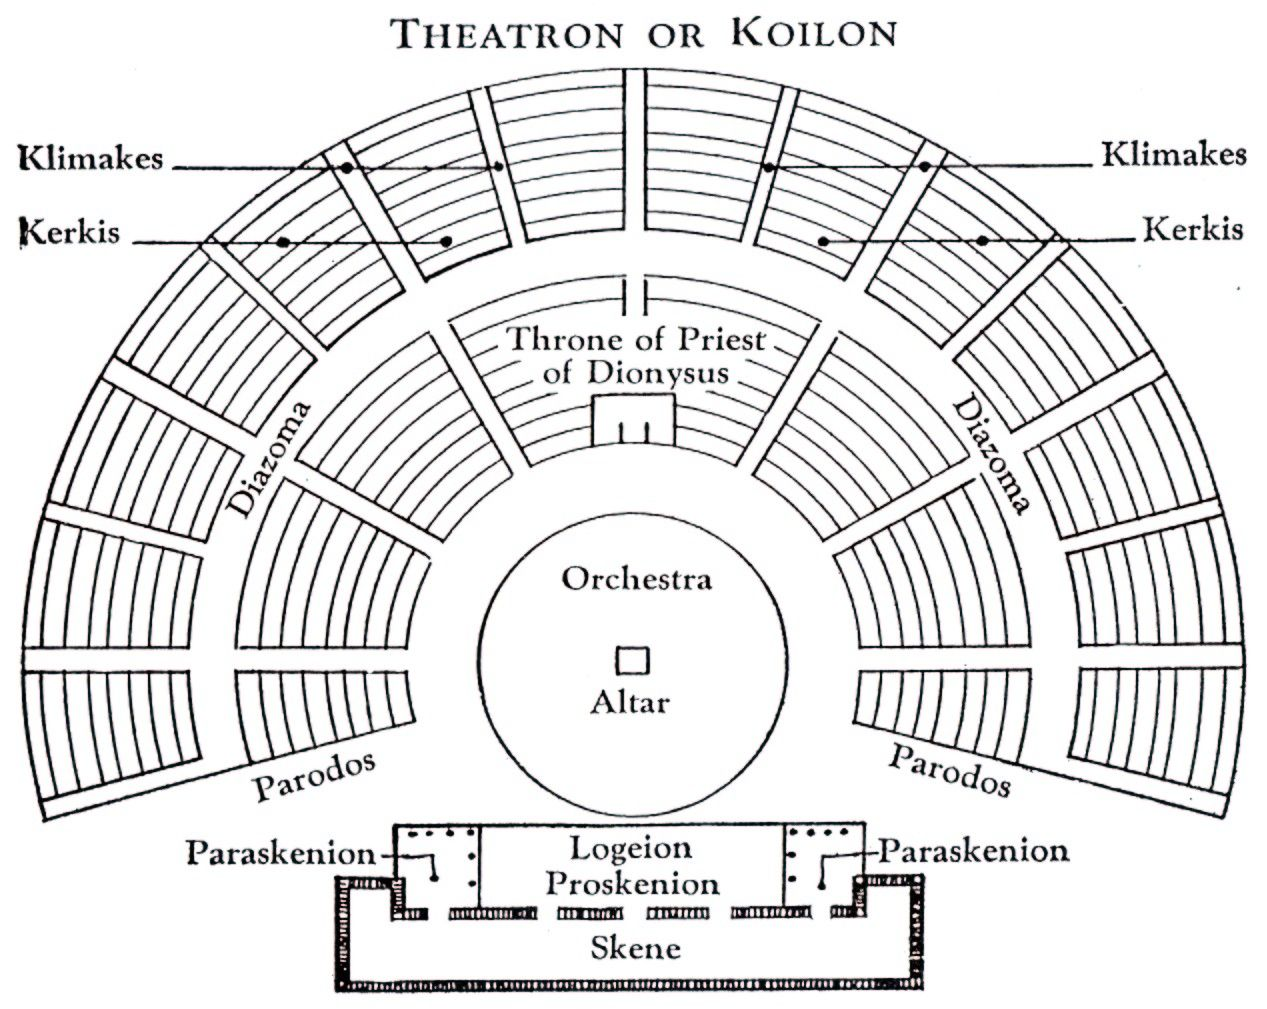 Masterpieces of Greek and Roman Theatre Theatre